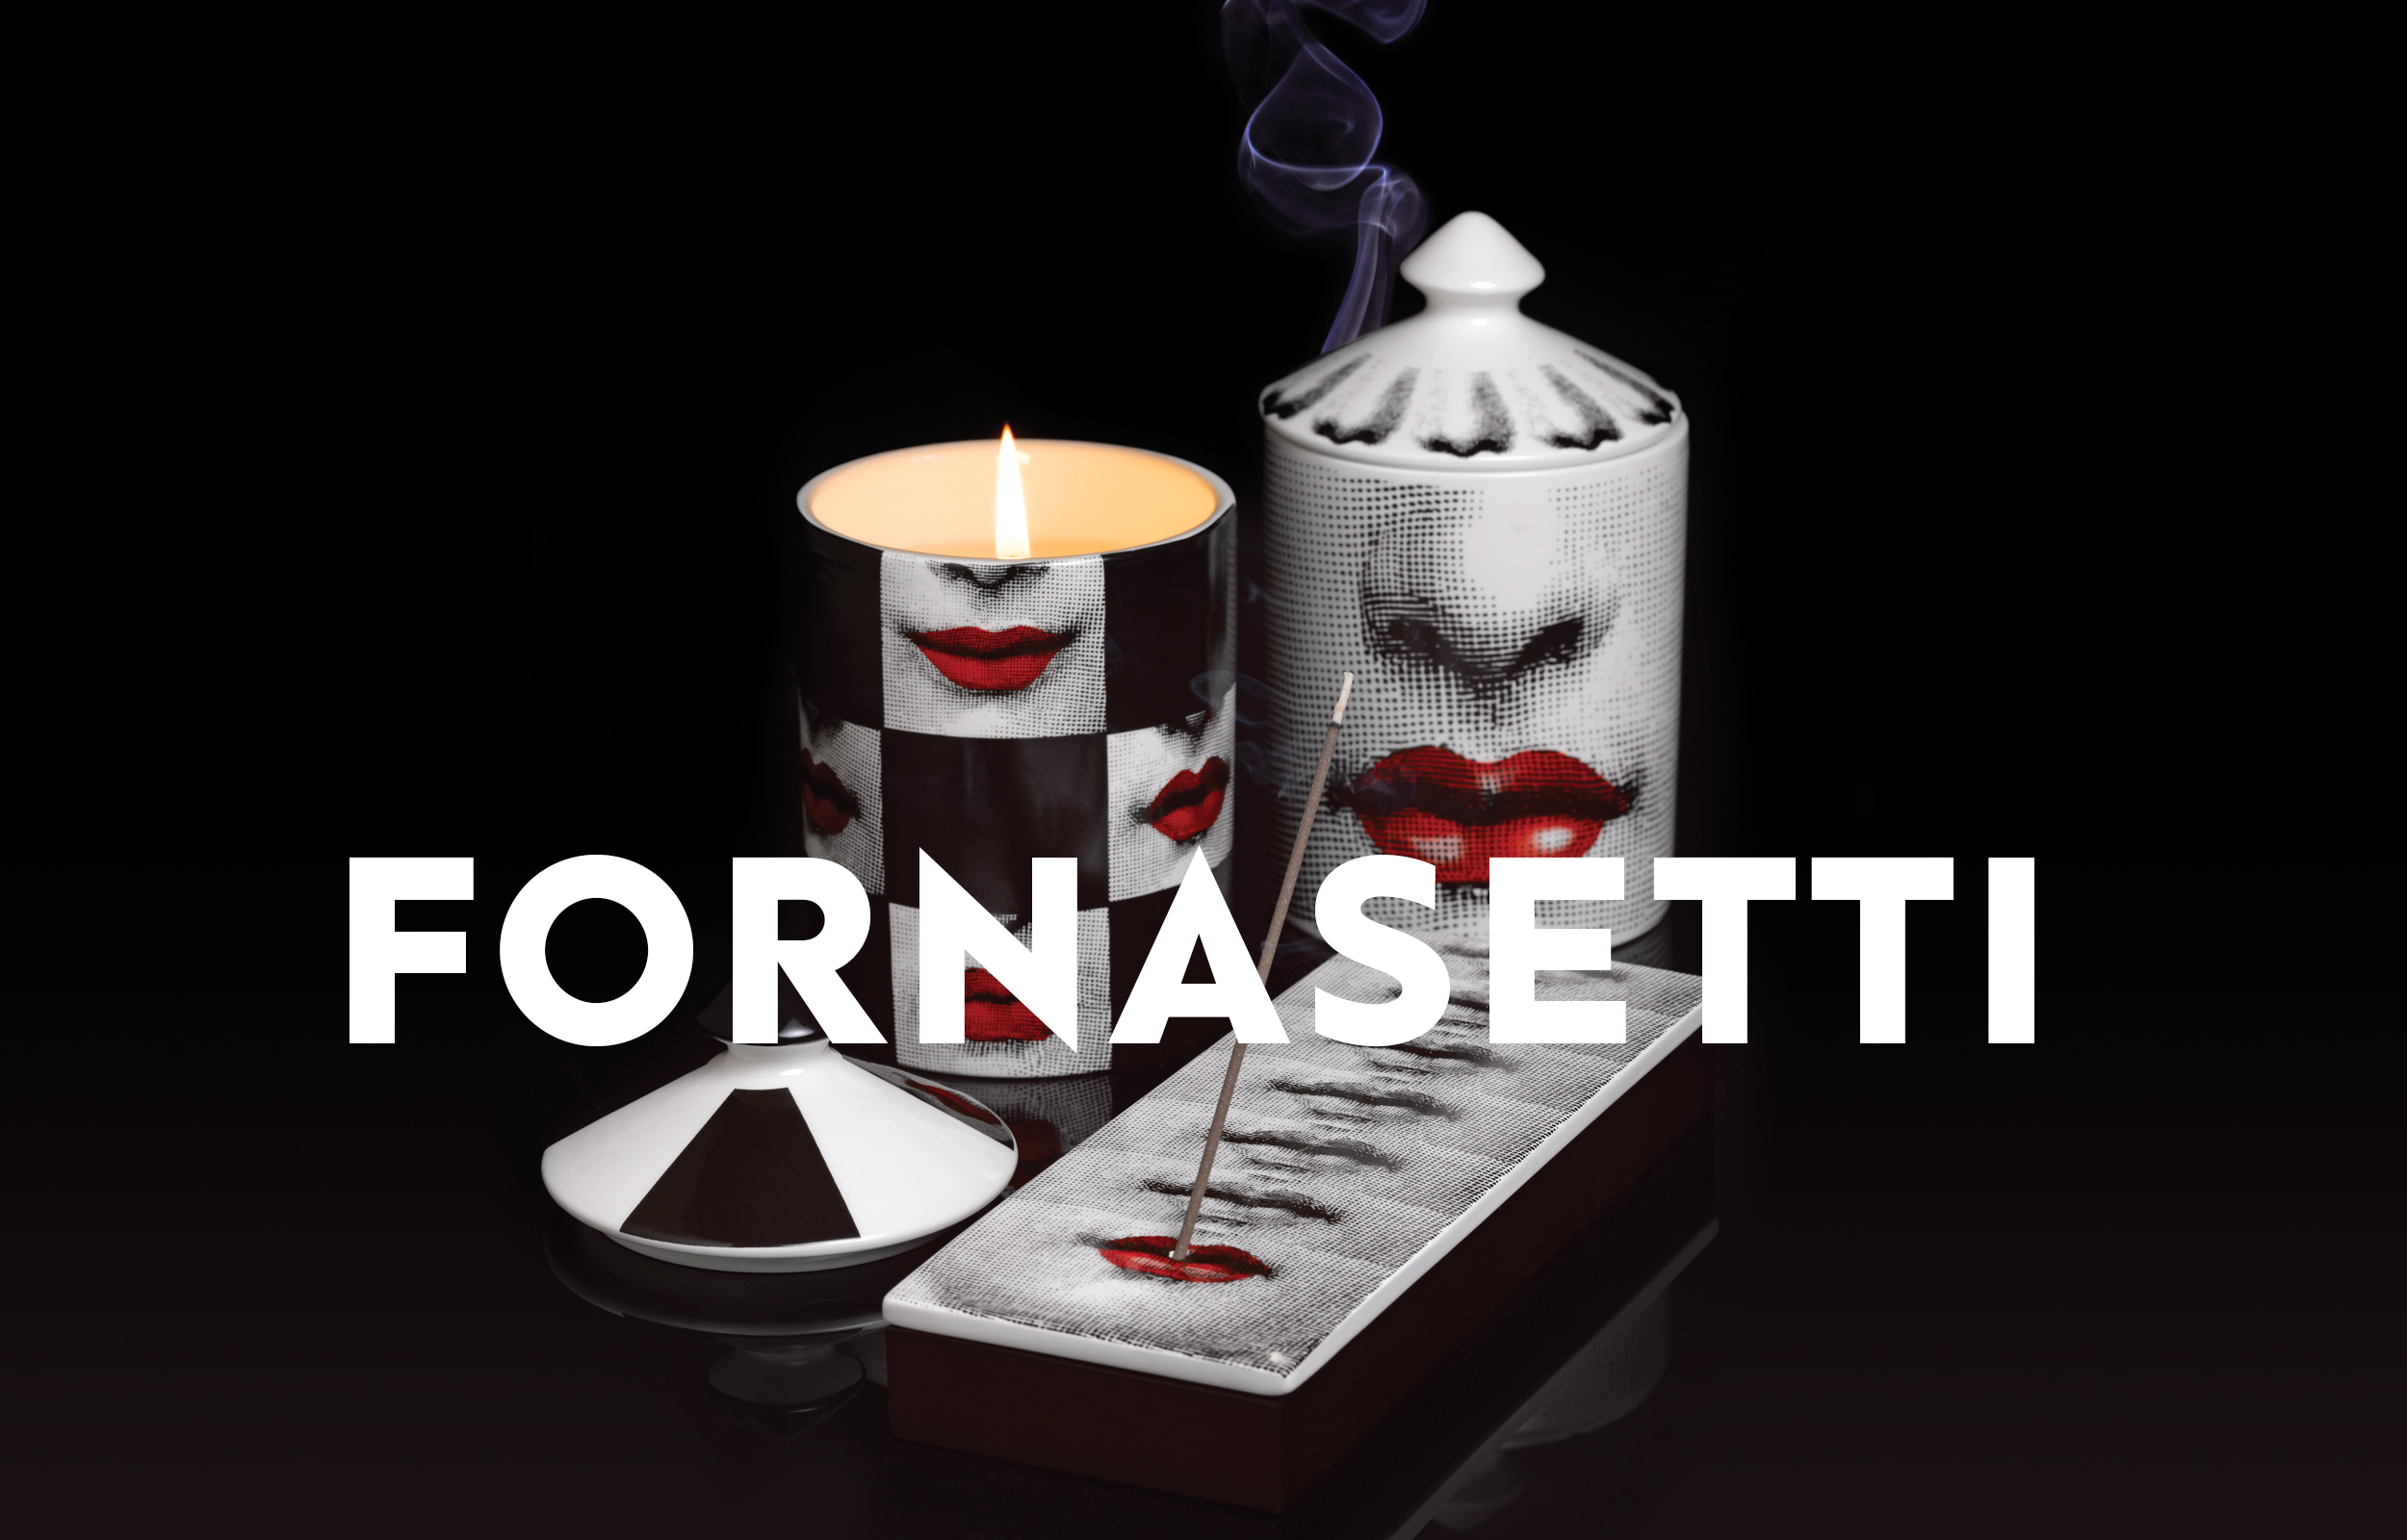 Fornasetti-intro-narrative